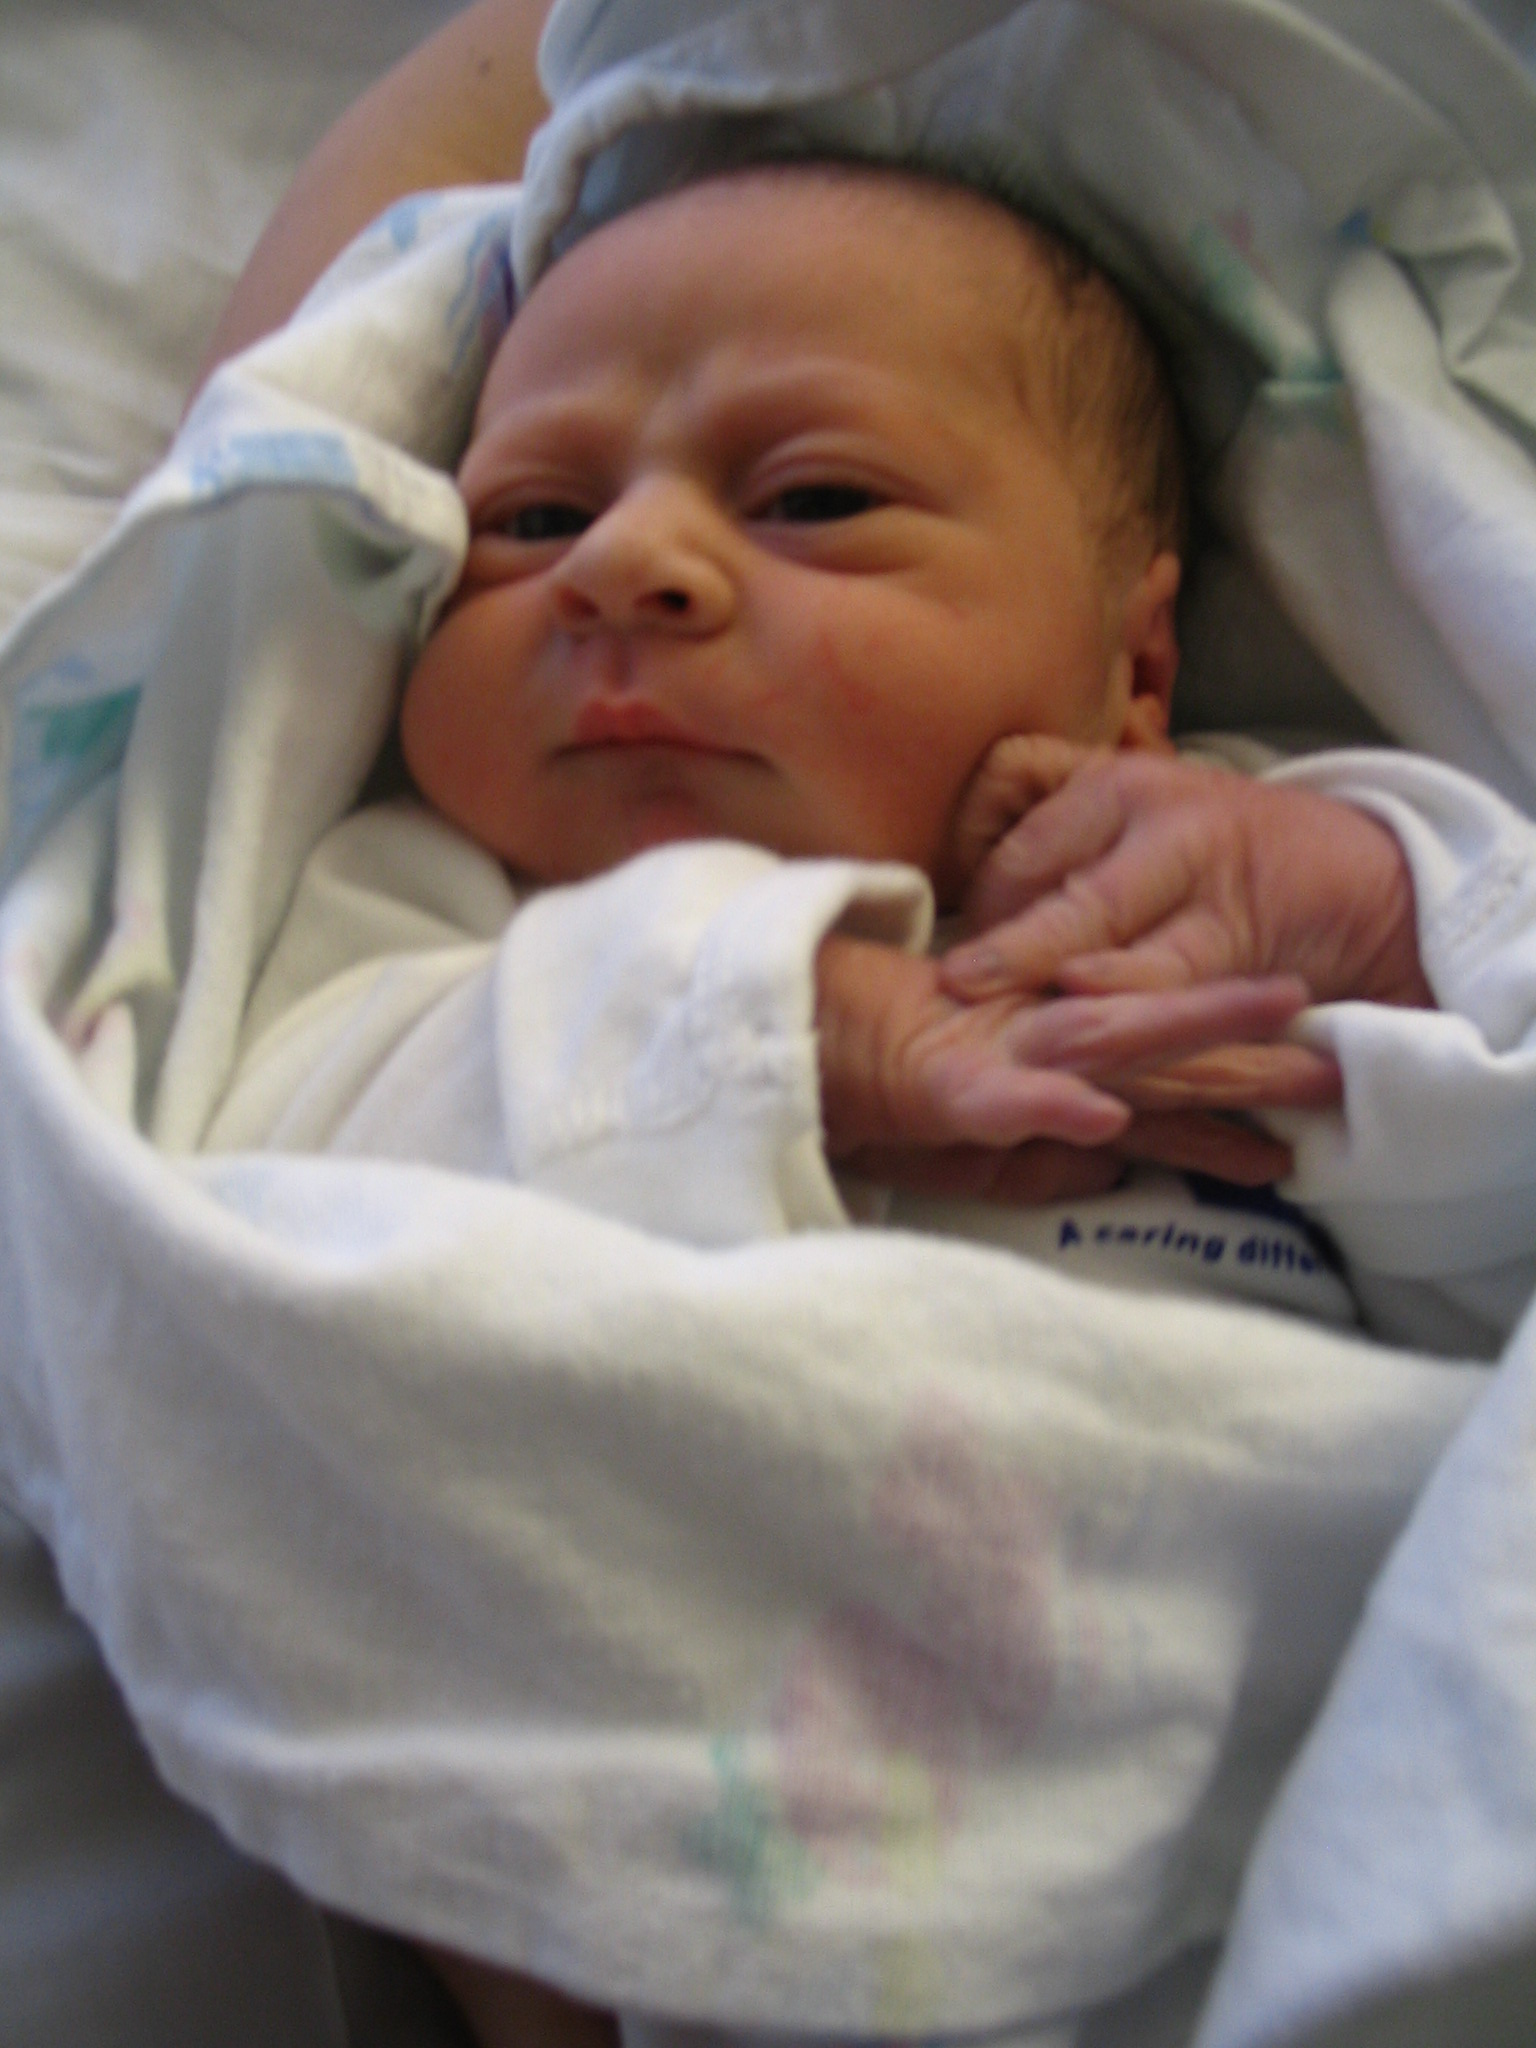 (c)2009 Em, https://diabetesdietdialogue.wordpress.com Our new Grandson, Day 1